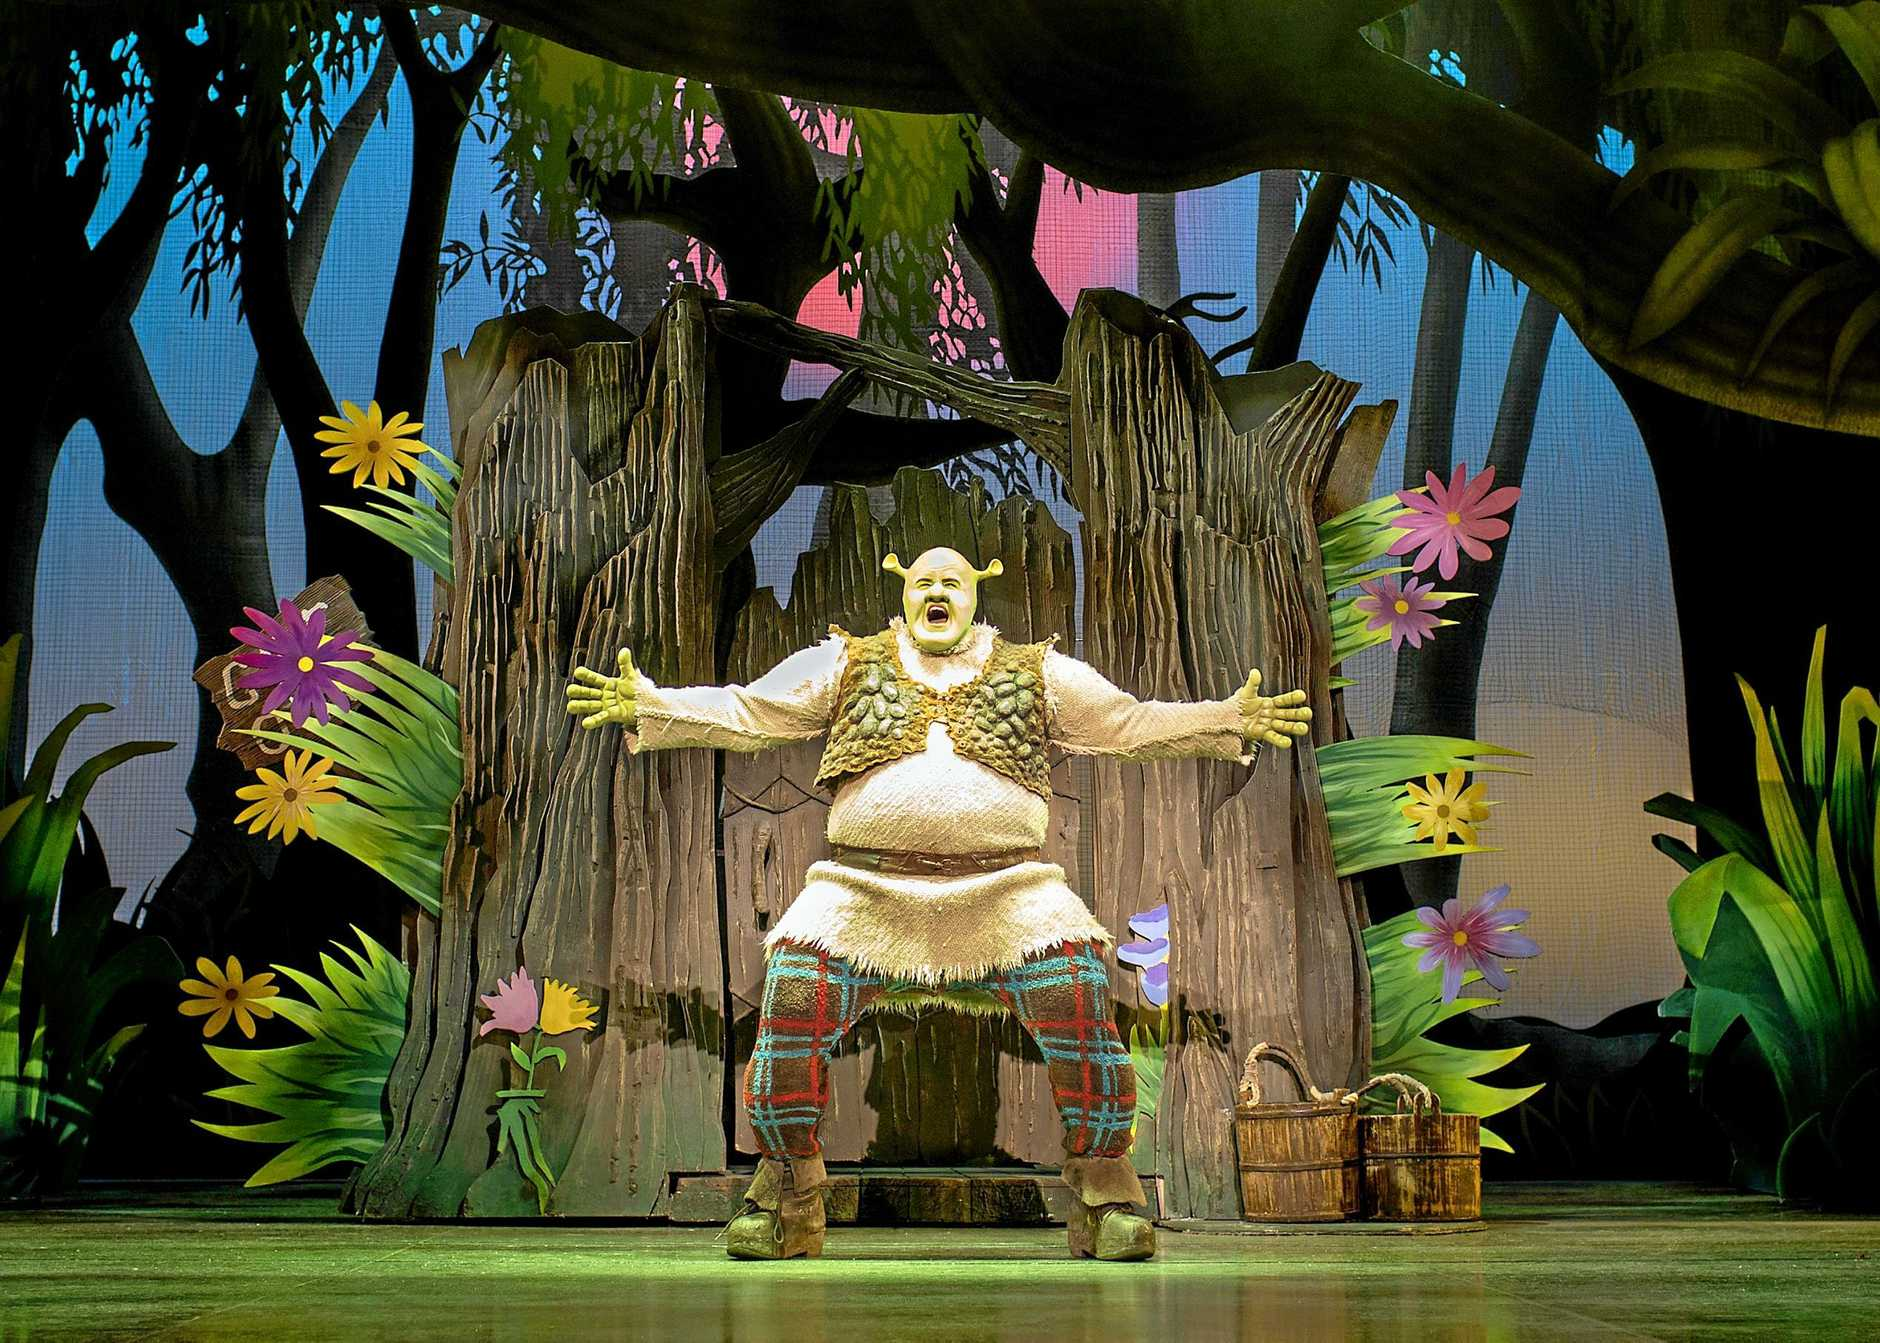 Shrek the Musical is coming to Australia.